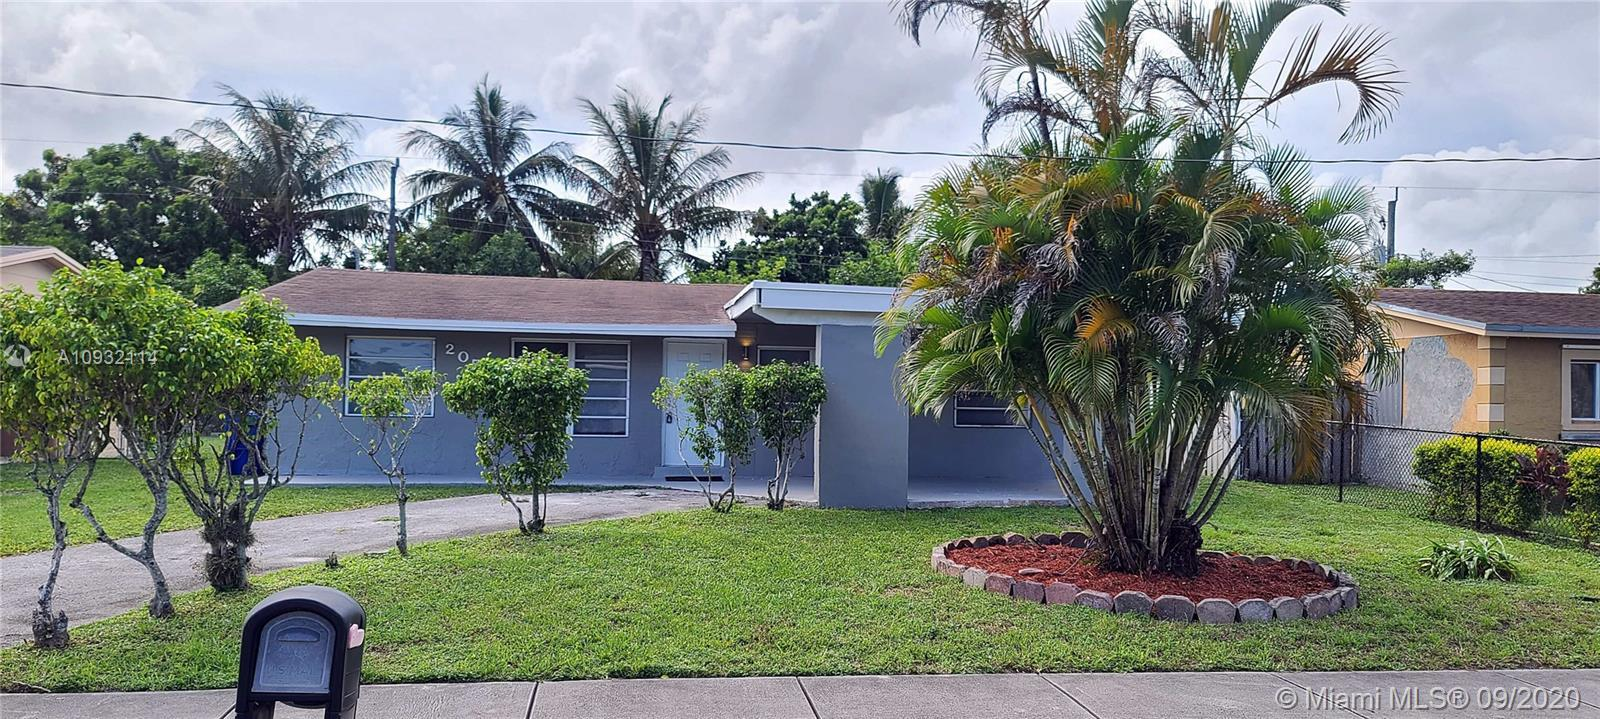 Amazing corner single home total sqft 1.466 sqf desirable area. BEACH TIME no worries 15 minutes dri